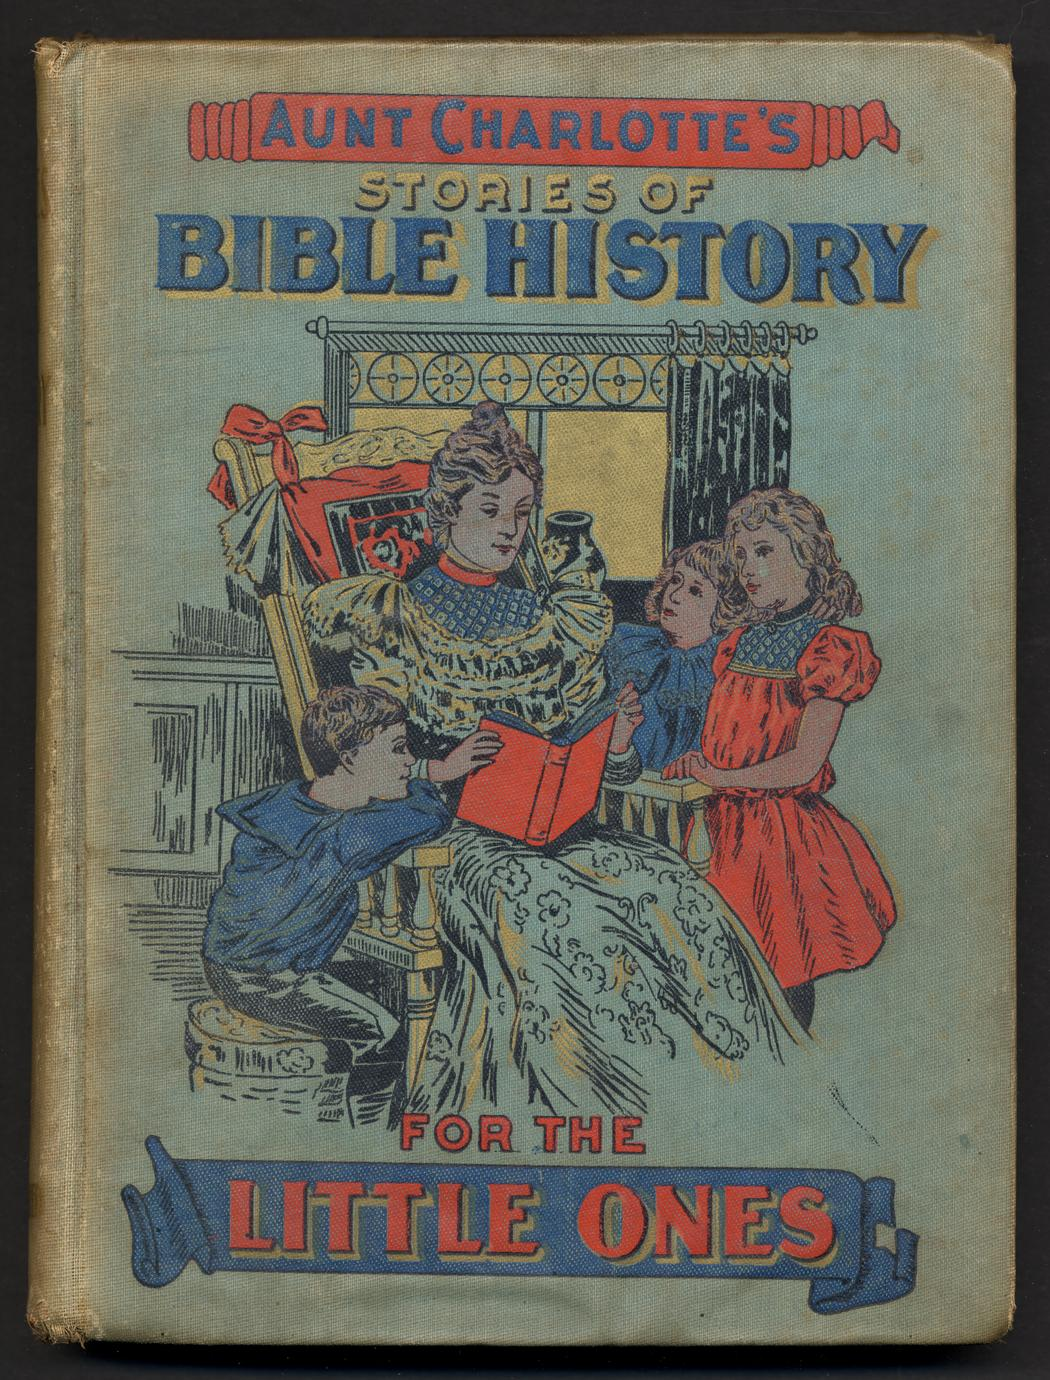 Aunt Charlotte's stories of Bible history for the children : designed for the 52 Sundays in the year, containing over 100 stories from the Holy Book, embracing instructive historical events from the Old and New Testaments (1 of 2)